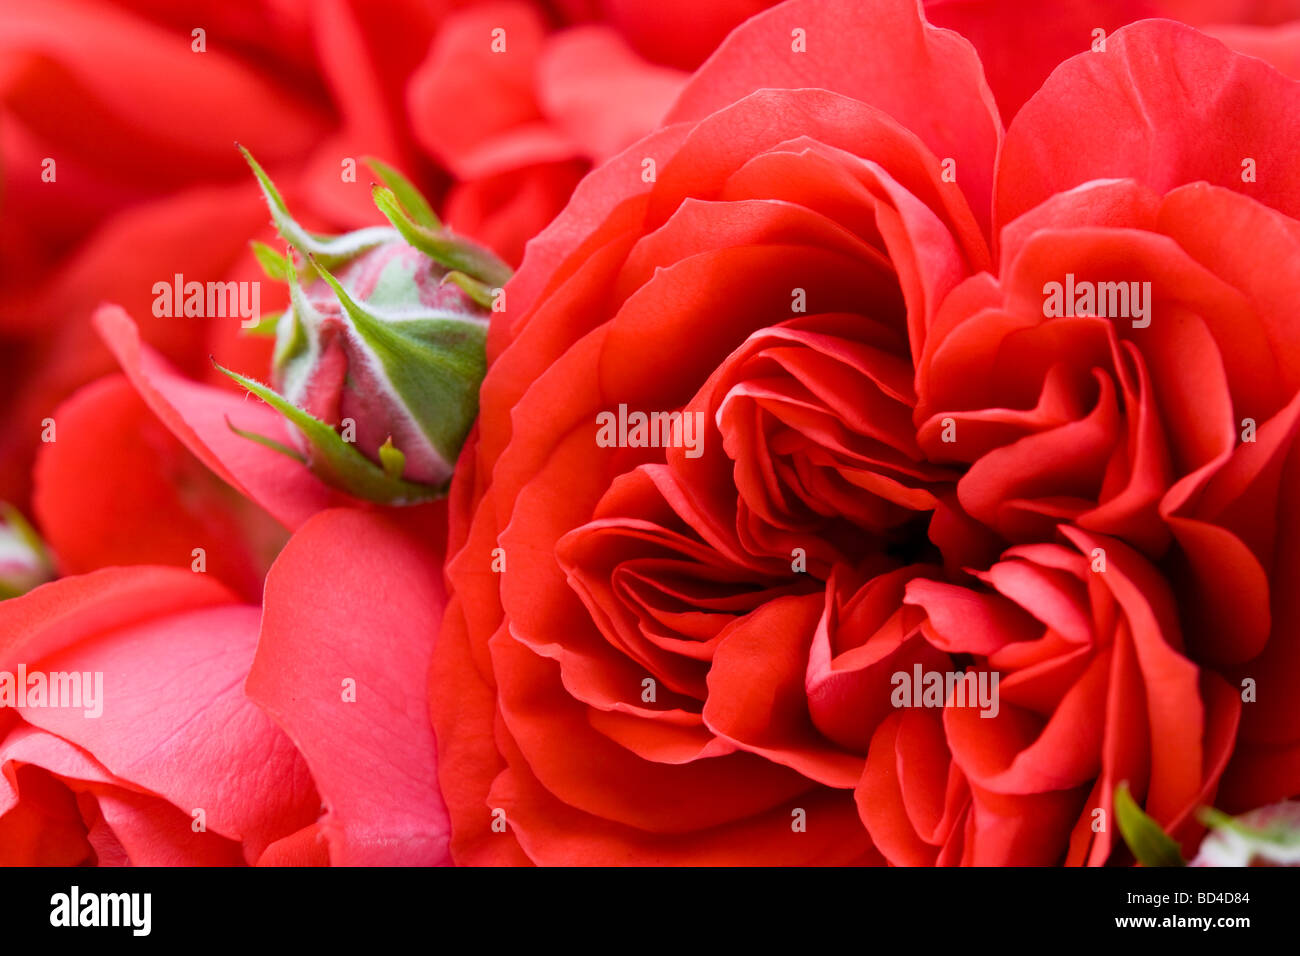 red patio rose - Stock Image